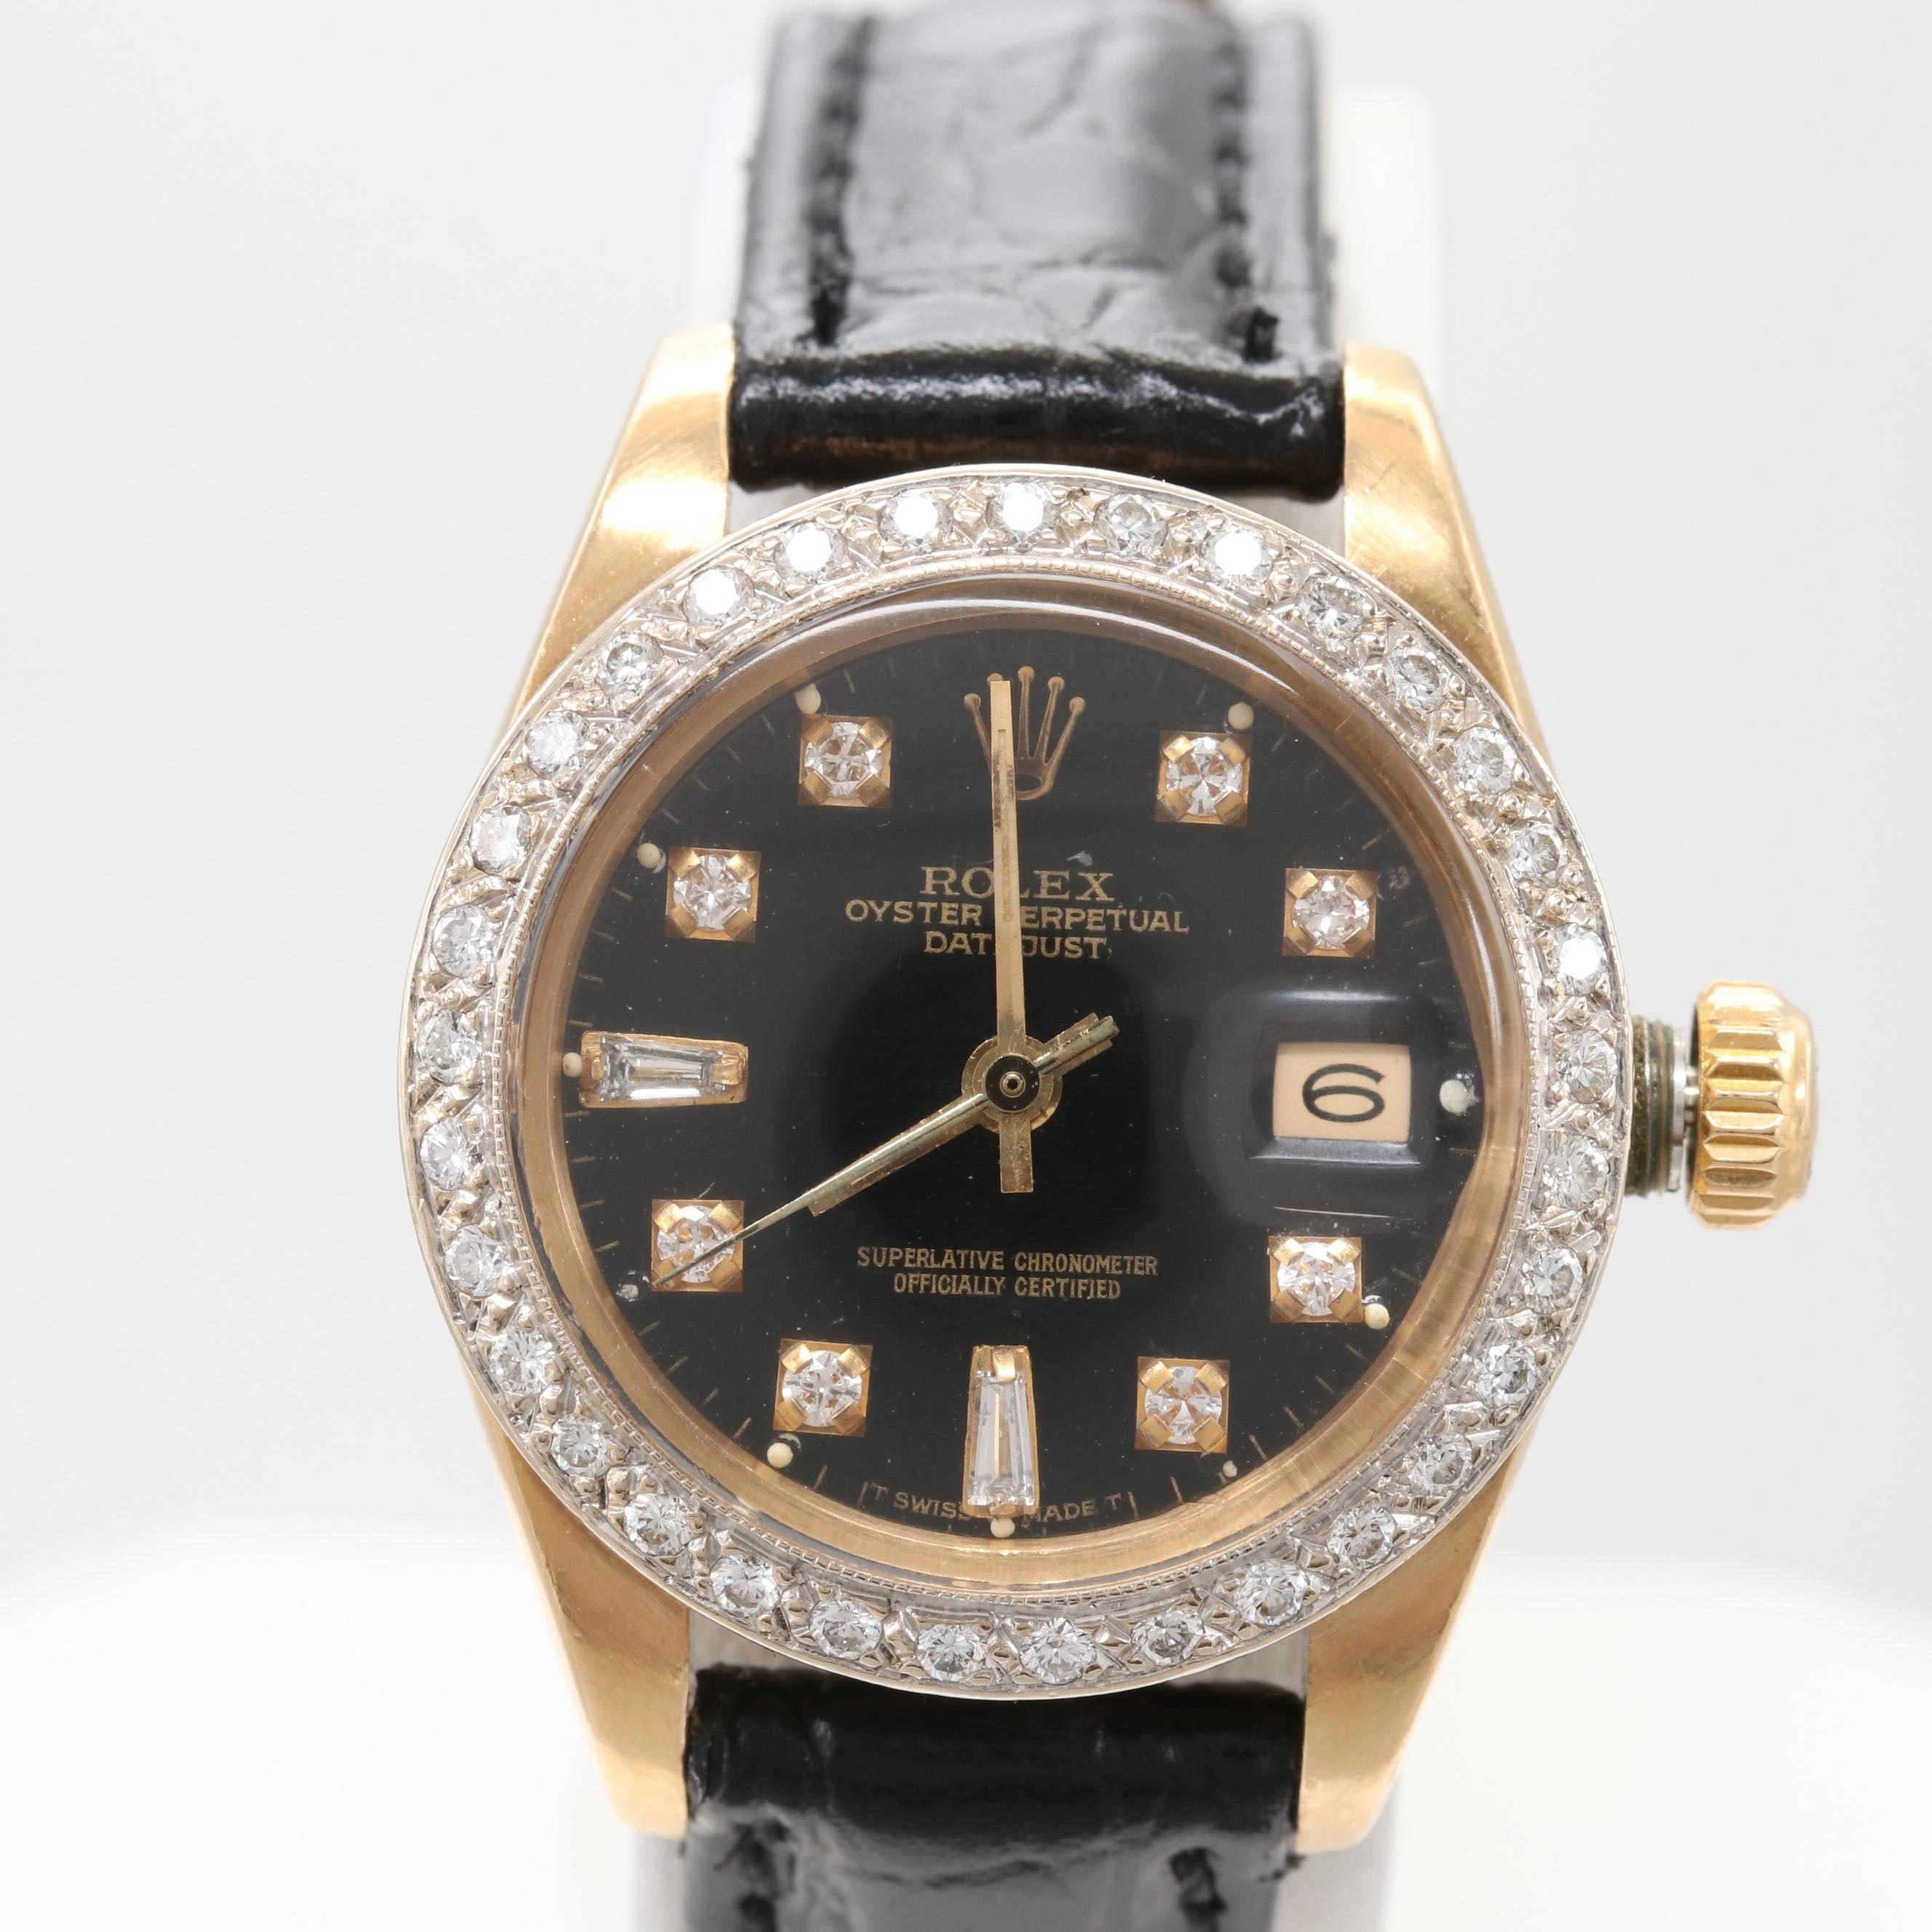 Vintage Rolex Datejust 18K Yellow Gold Diamond Wristwatch, 1983